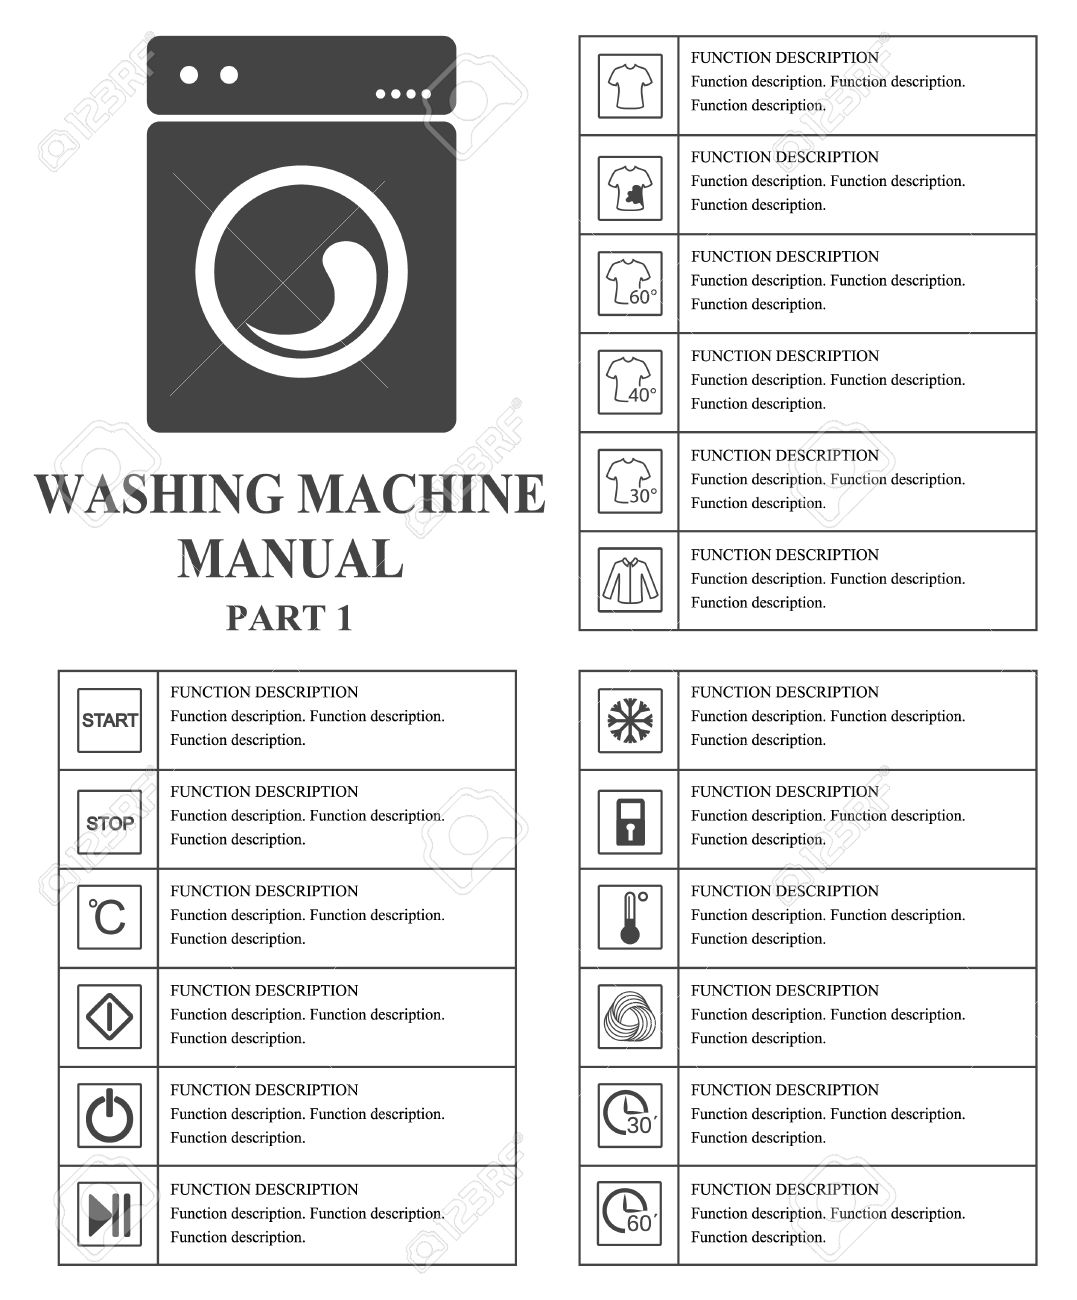 Oven manual symbols part 1 instructions signs and symbols for oven manual symbols part 1 instructions signs and symbols for washing machine exploitation manual buycottarizona Image collections